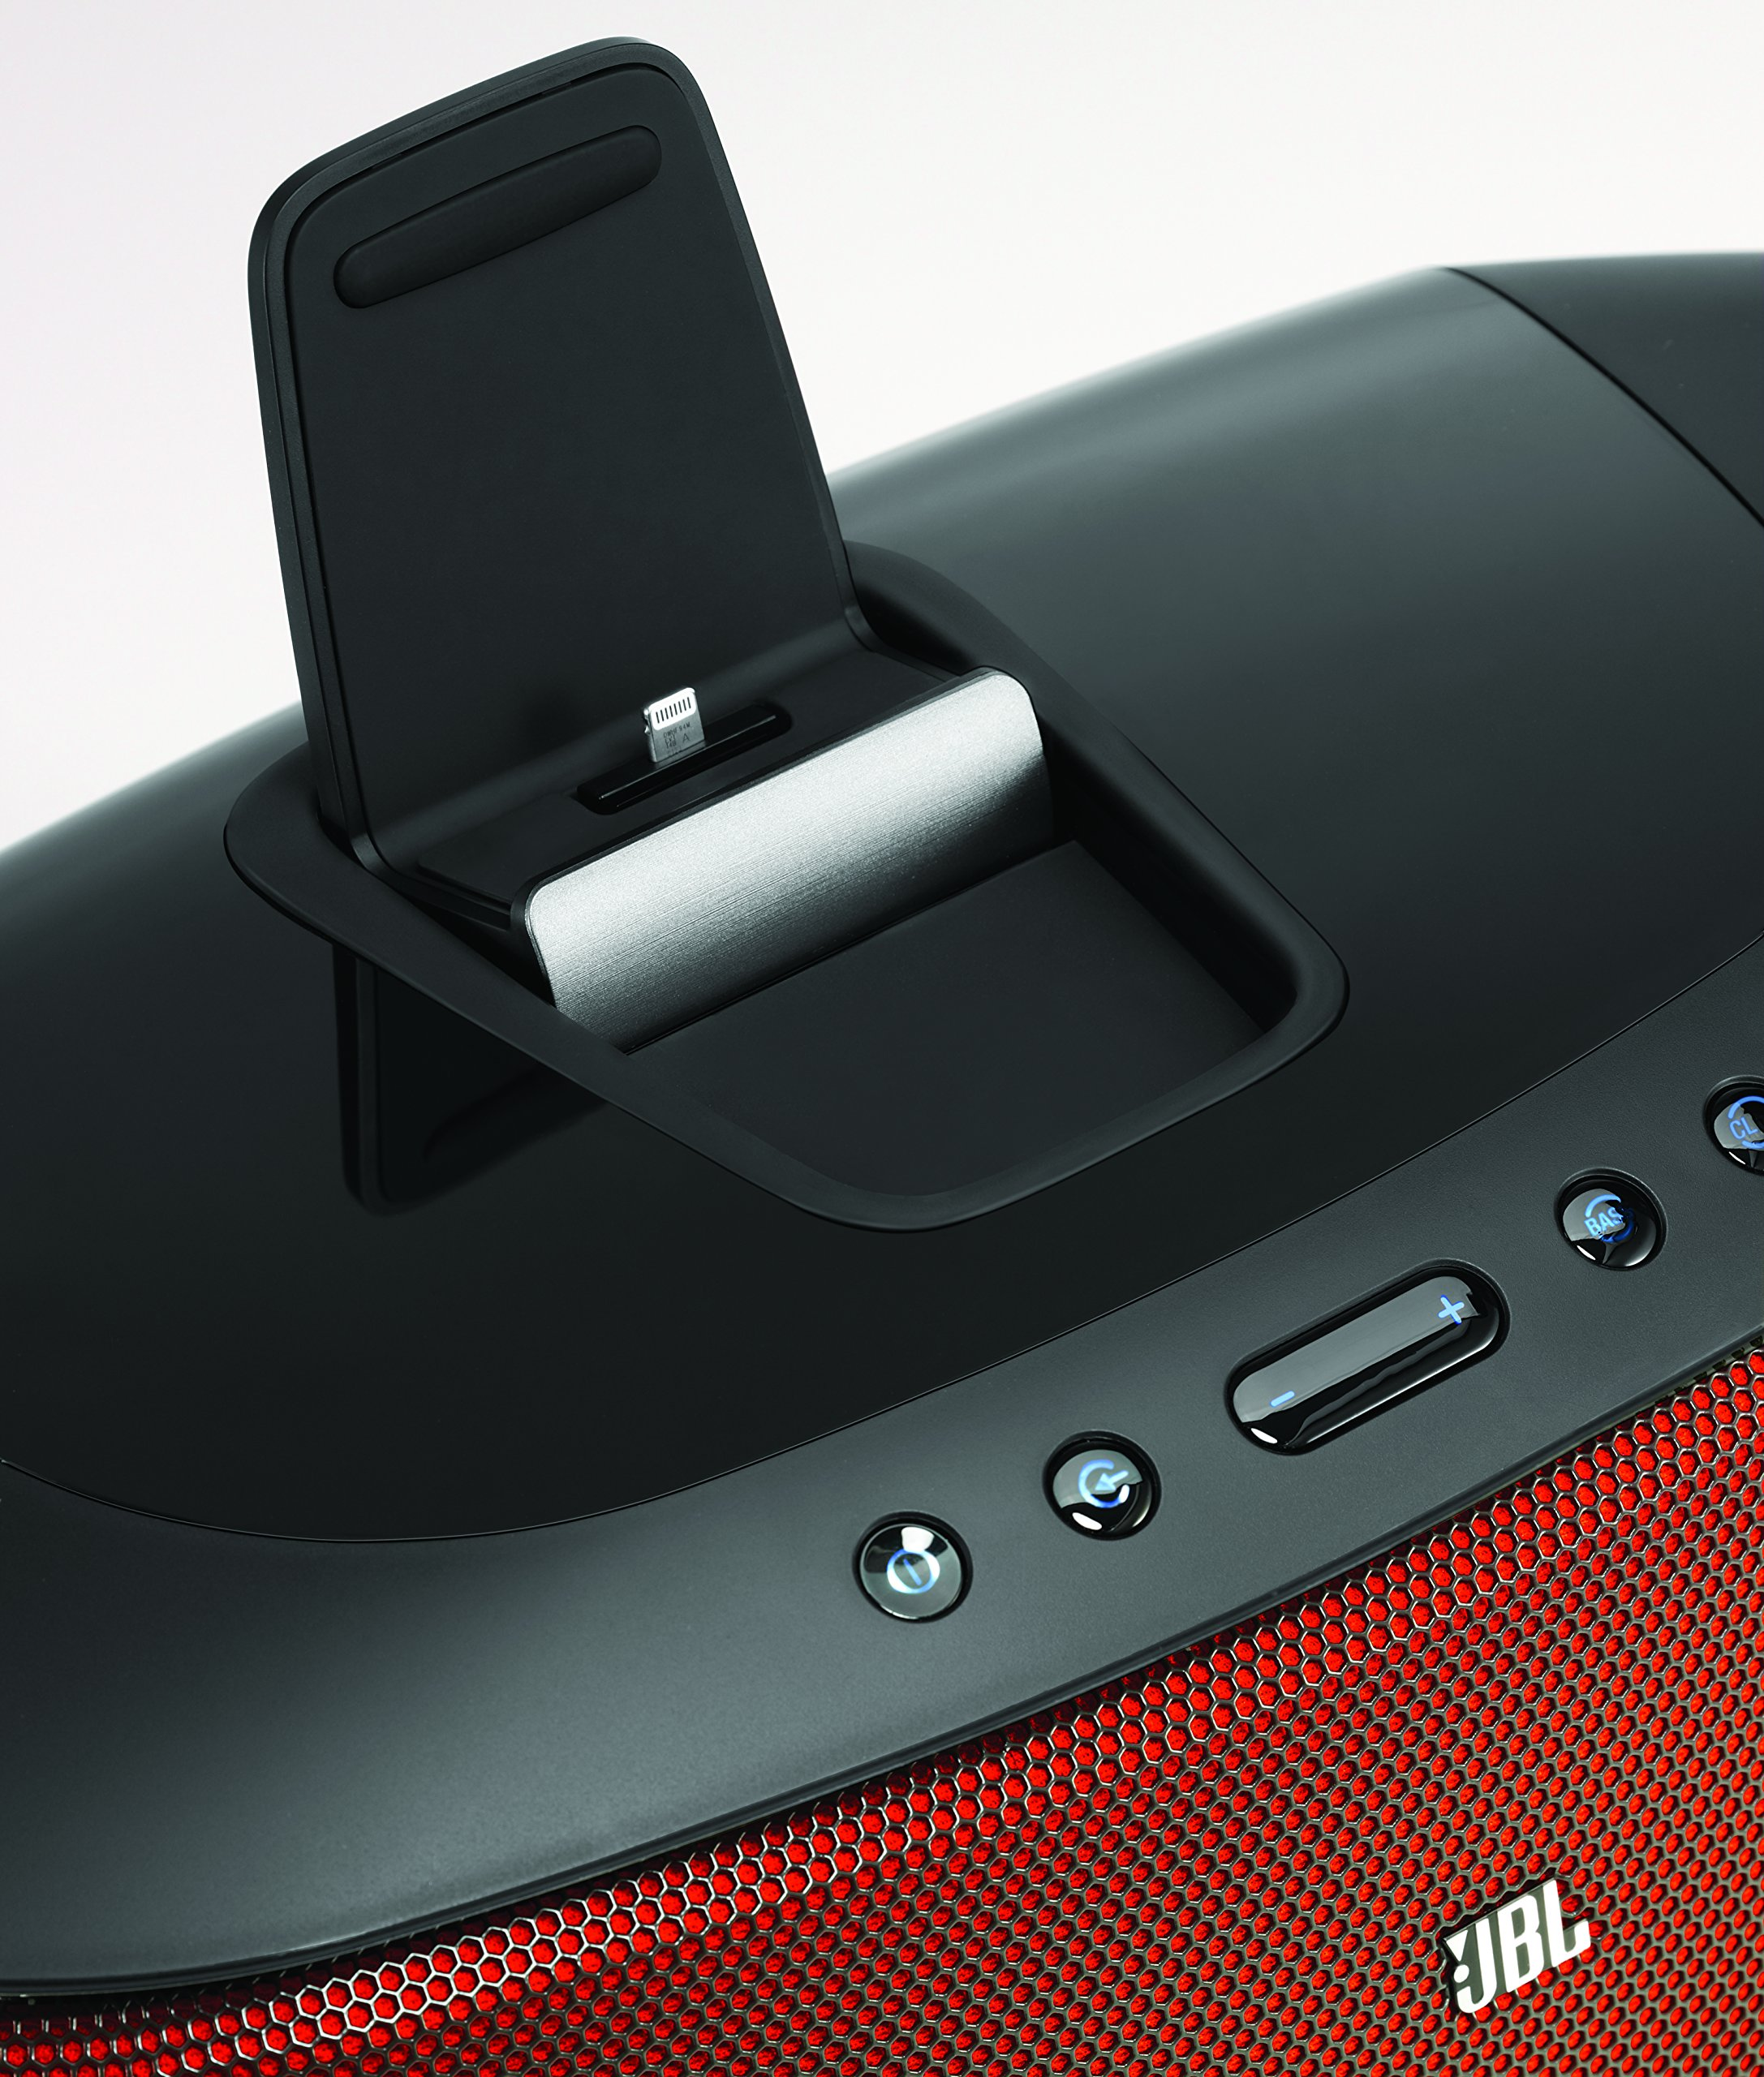 JBL On Beat Rumble Wireless Speaker Dock with Lightning Connector by JBL (Image #7)